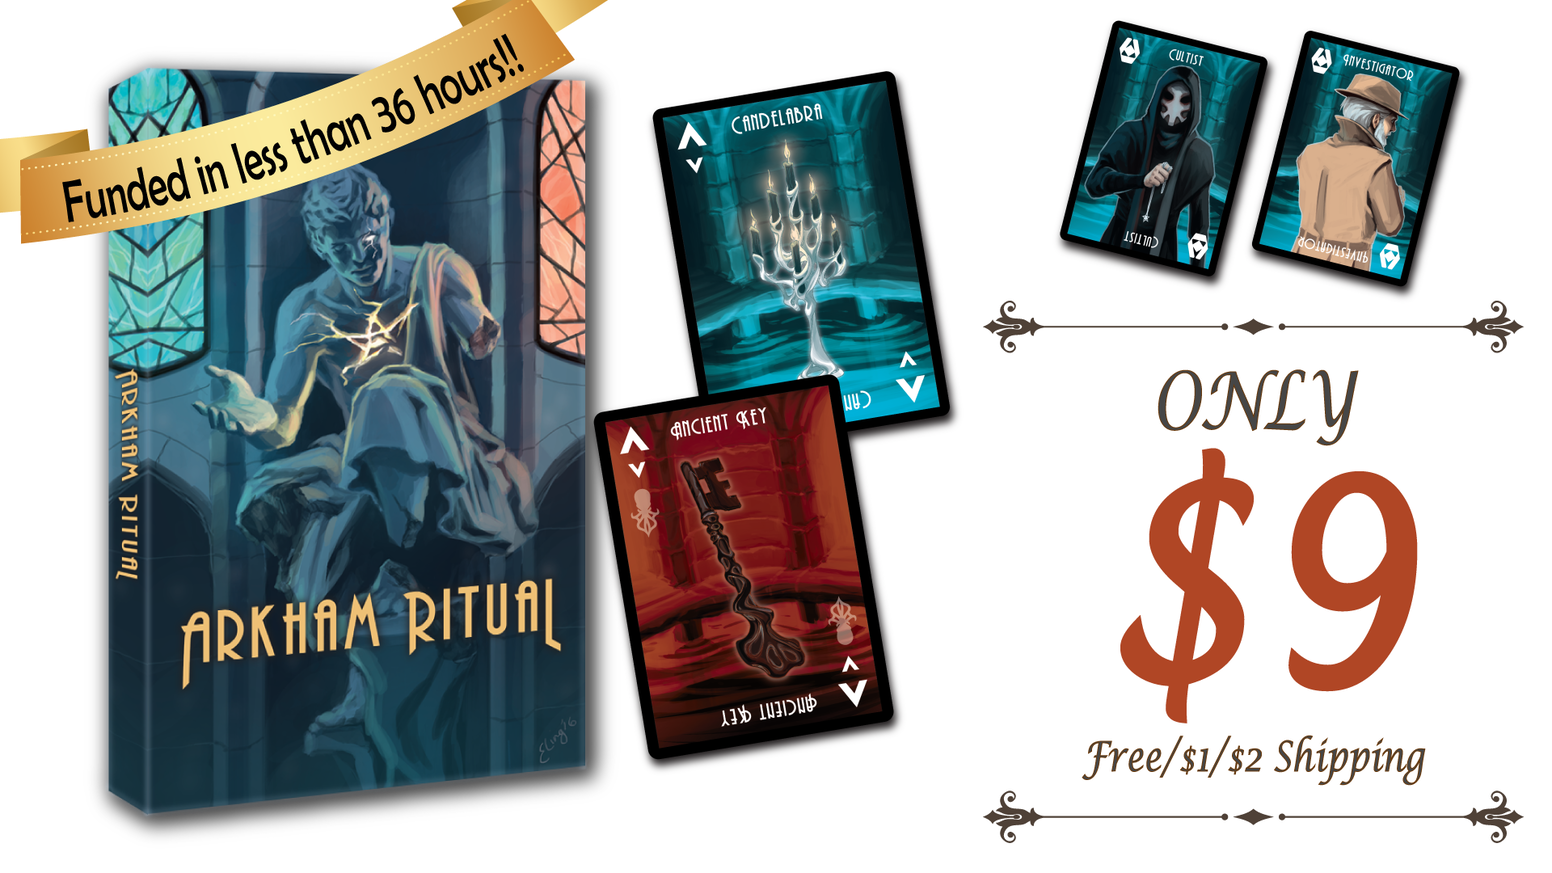 Deception, deduction, and push your luck card game for 3 to 7 players. Keep your sanity and escape from the horrific ritual alive!